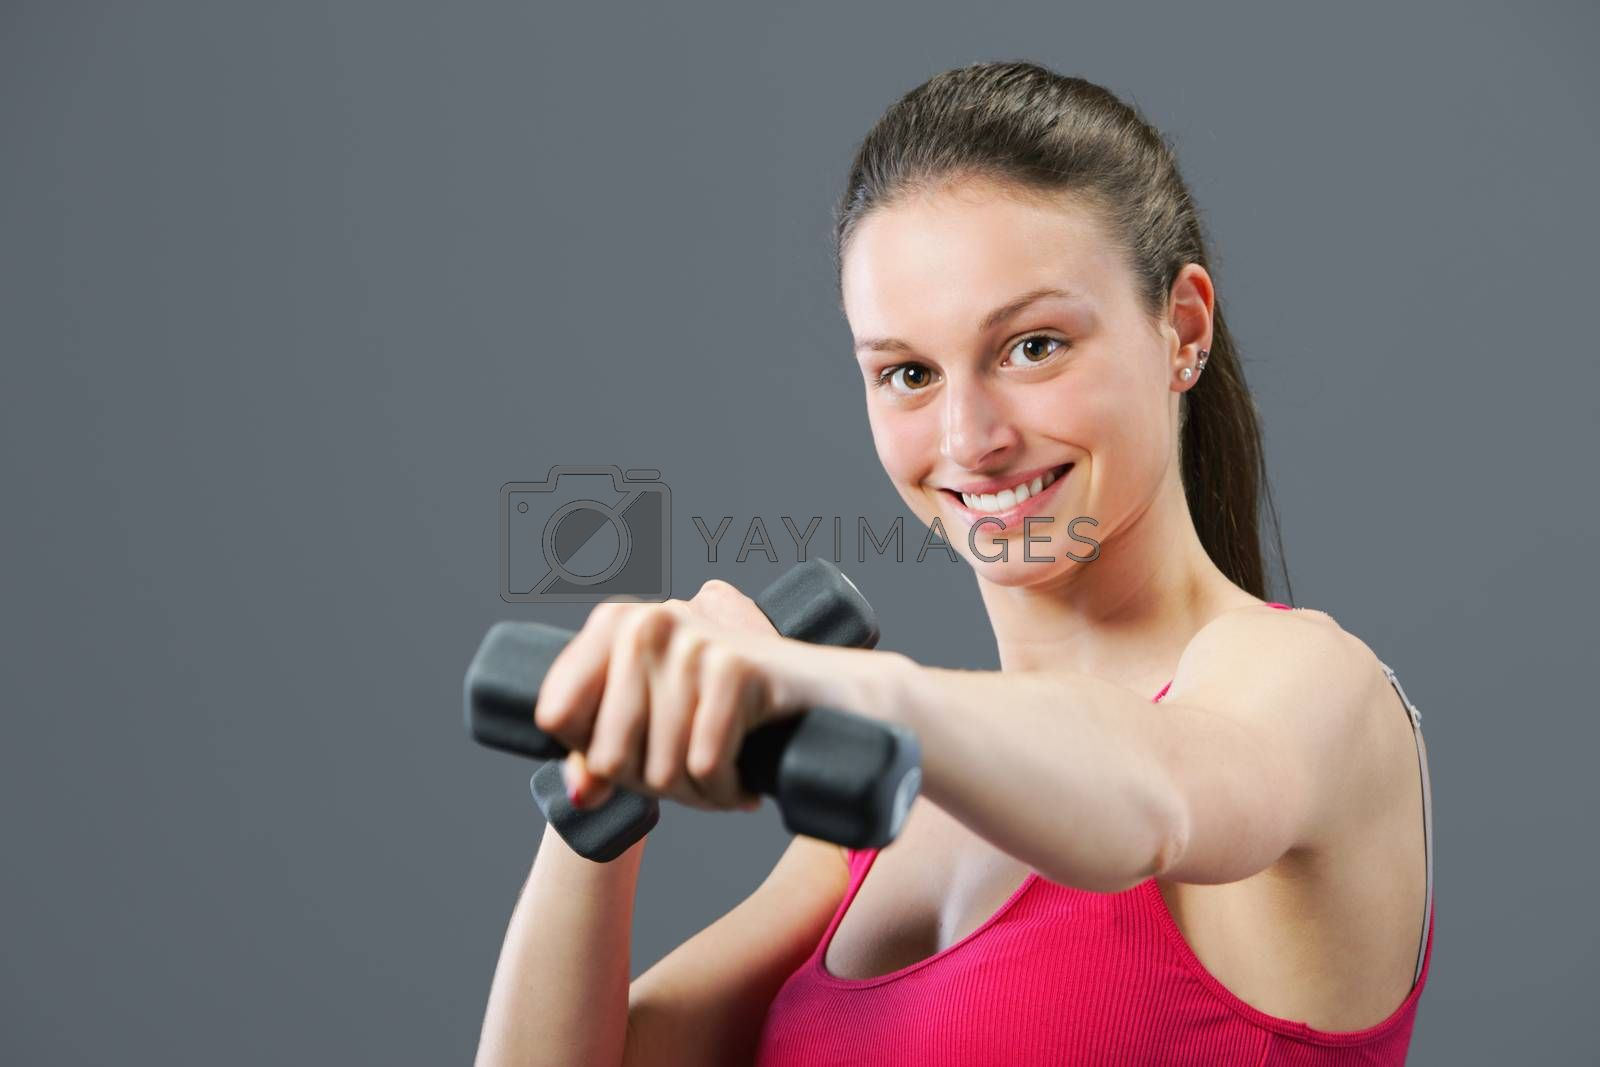 Portrait of beautiful young woman lifting dumbbells during exercise